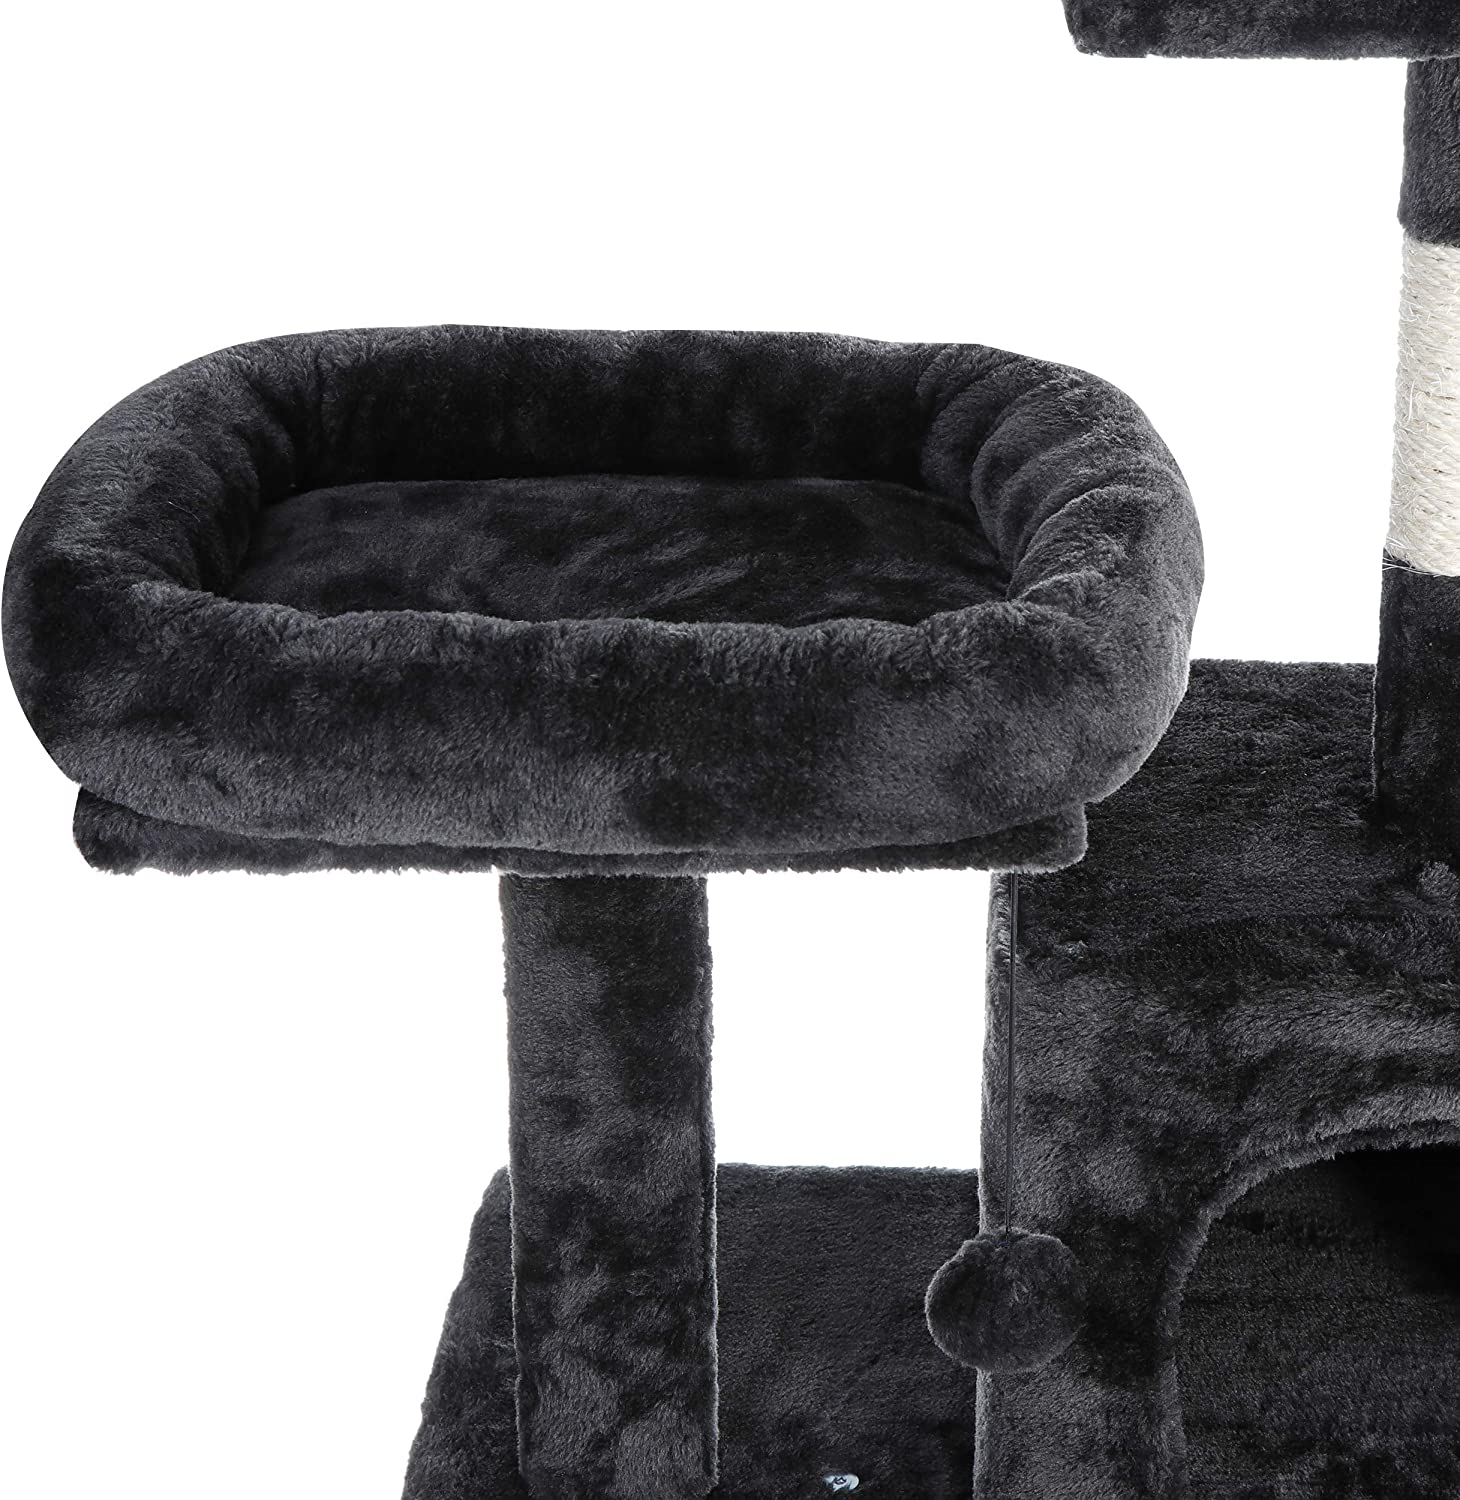 Nova Microdermabrasion 57.1 Multi-Level Cat Tree Tower with Scratching Posts Perch Hammock Pet Furniture Kitten Activity Tower Kitty Play House